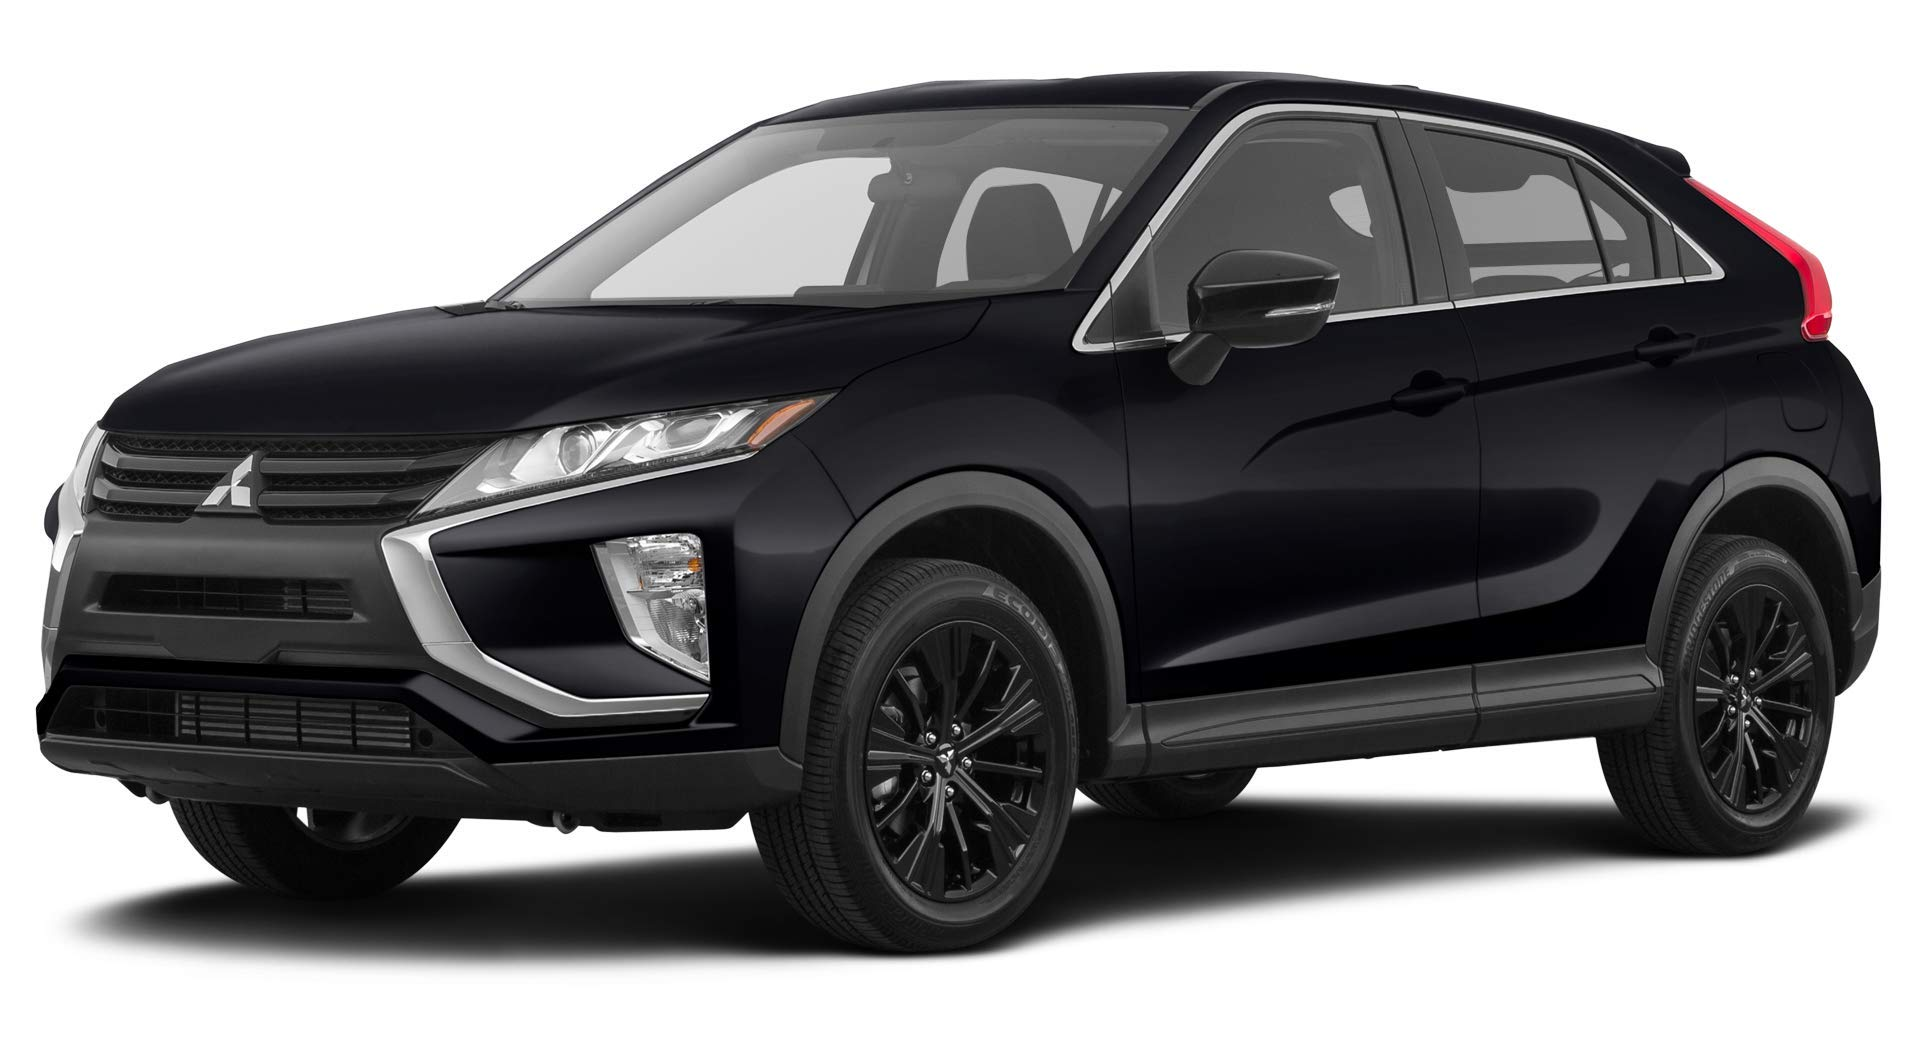 Amazon.com: 2020 Mitsubishi Eclipse Cross ES Reviews ...